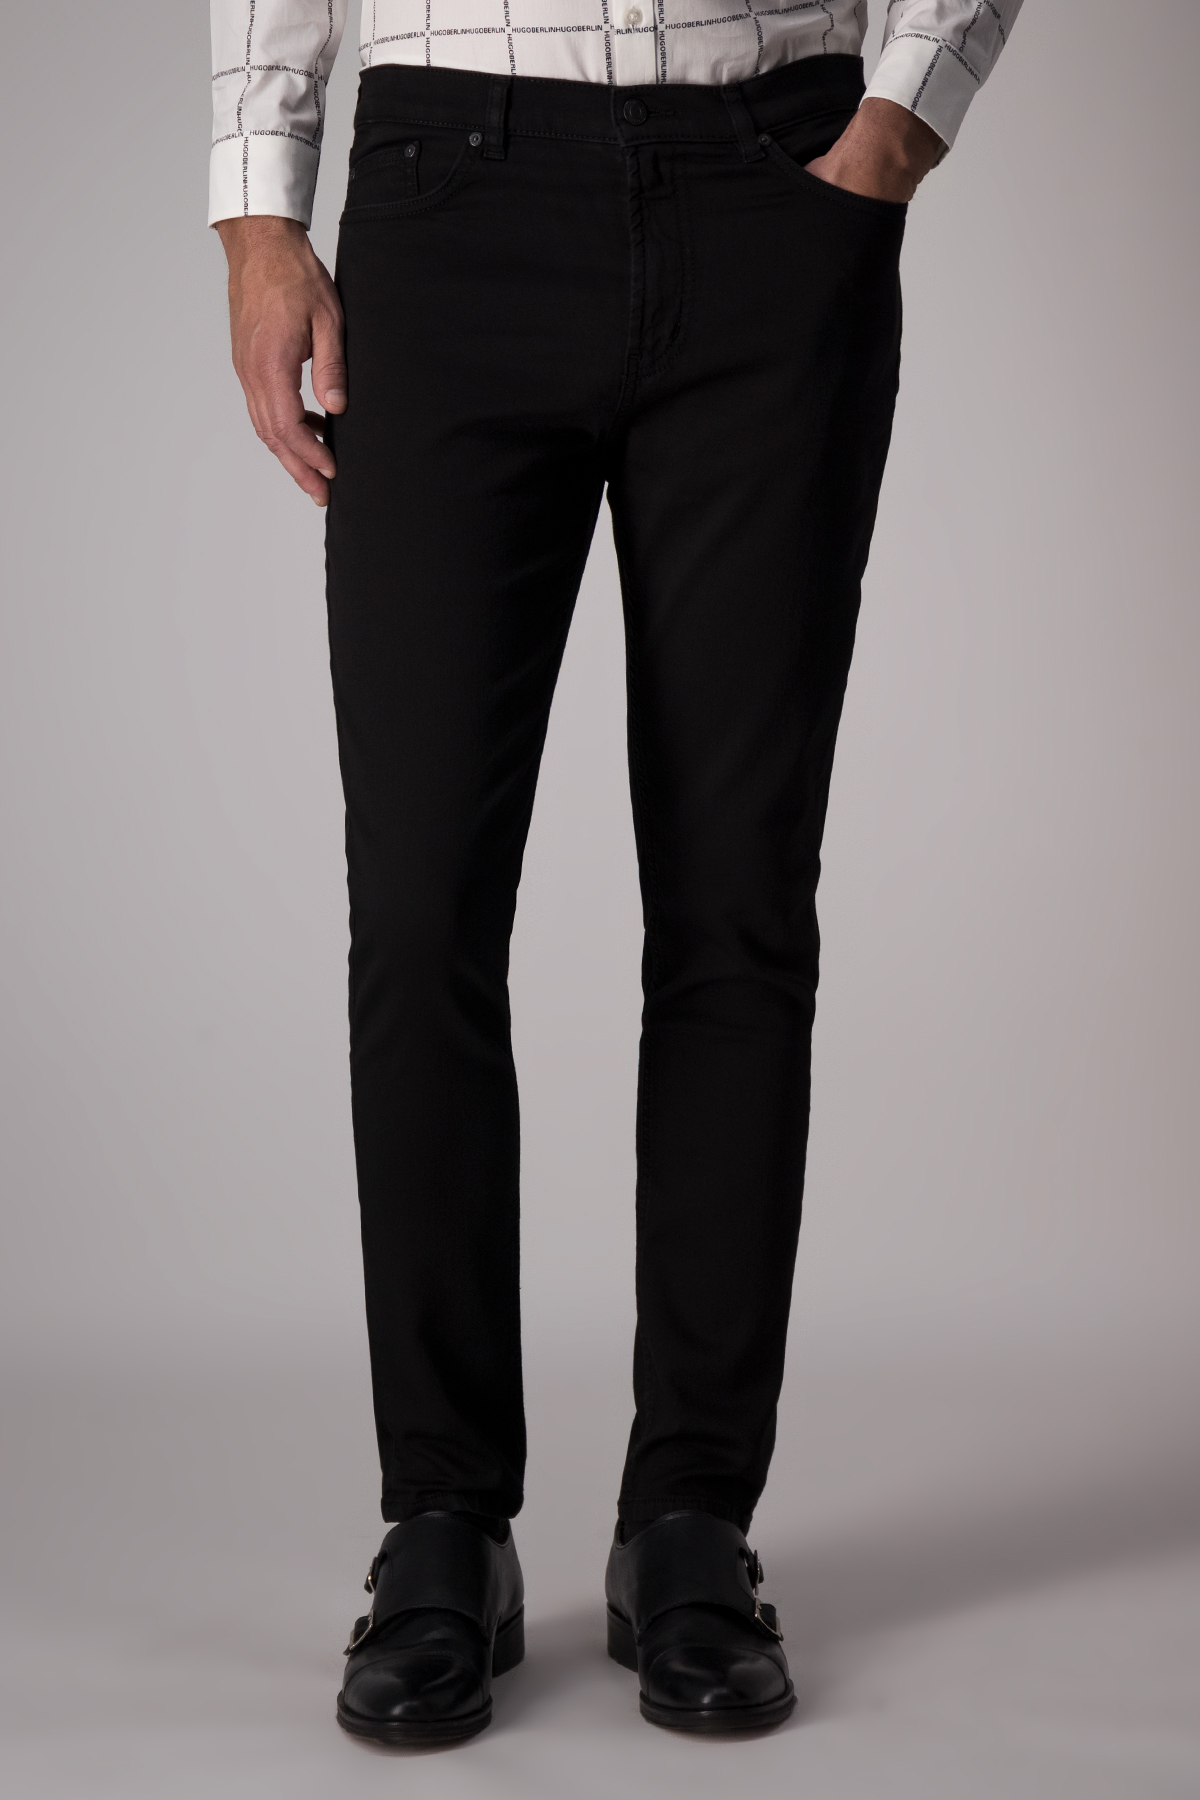 Jeans Hugo Boss color negro, slim fit.